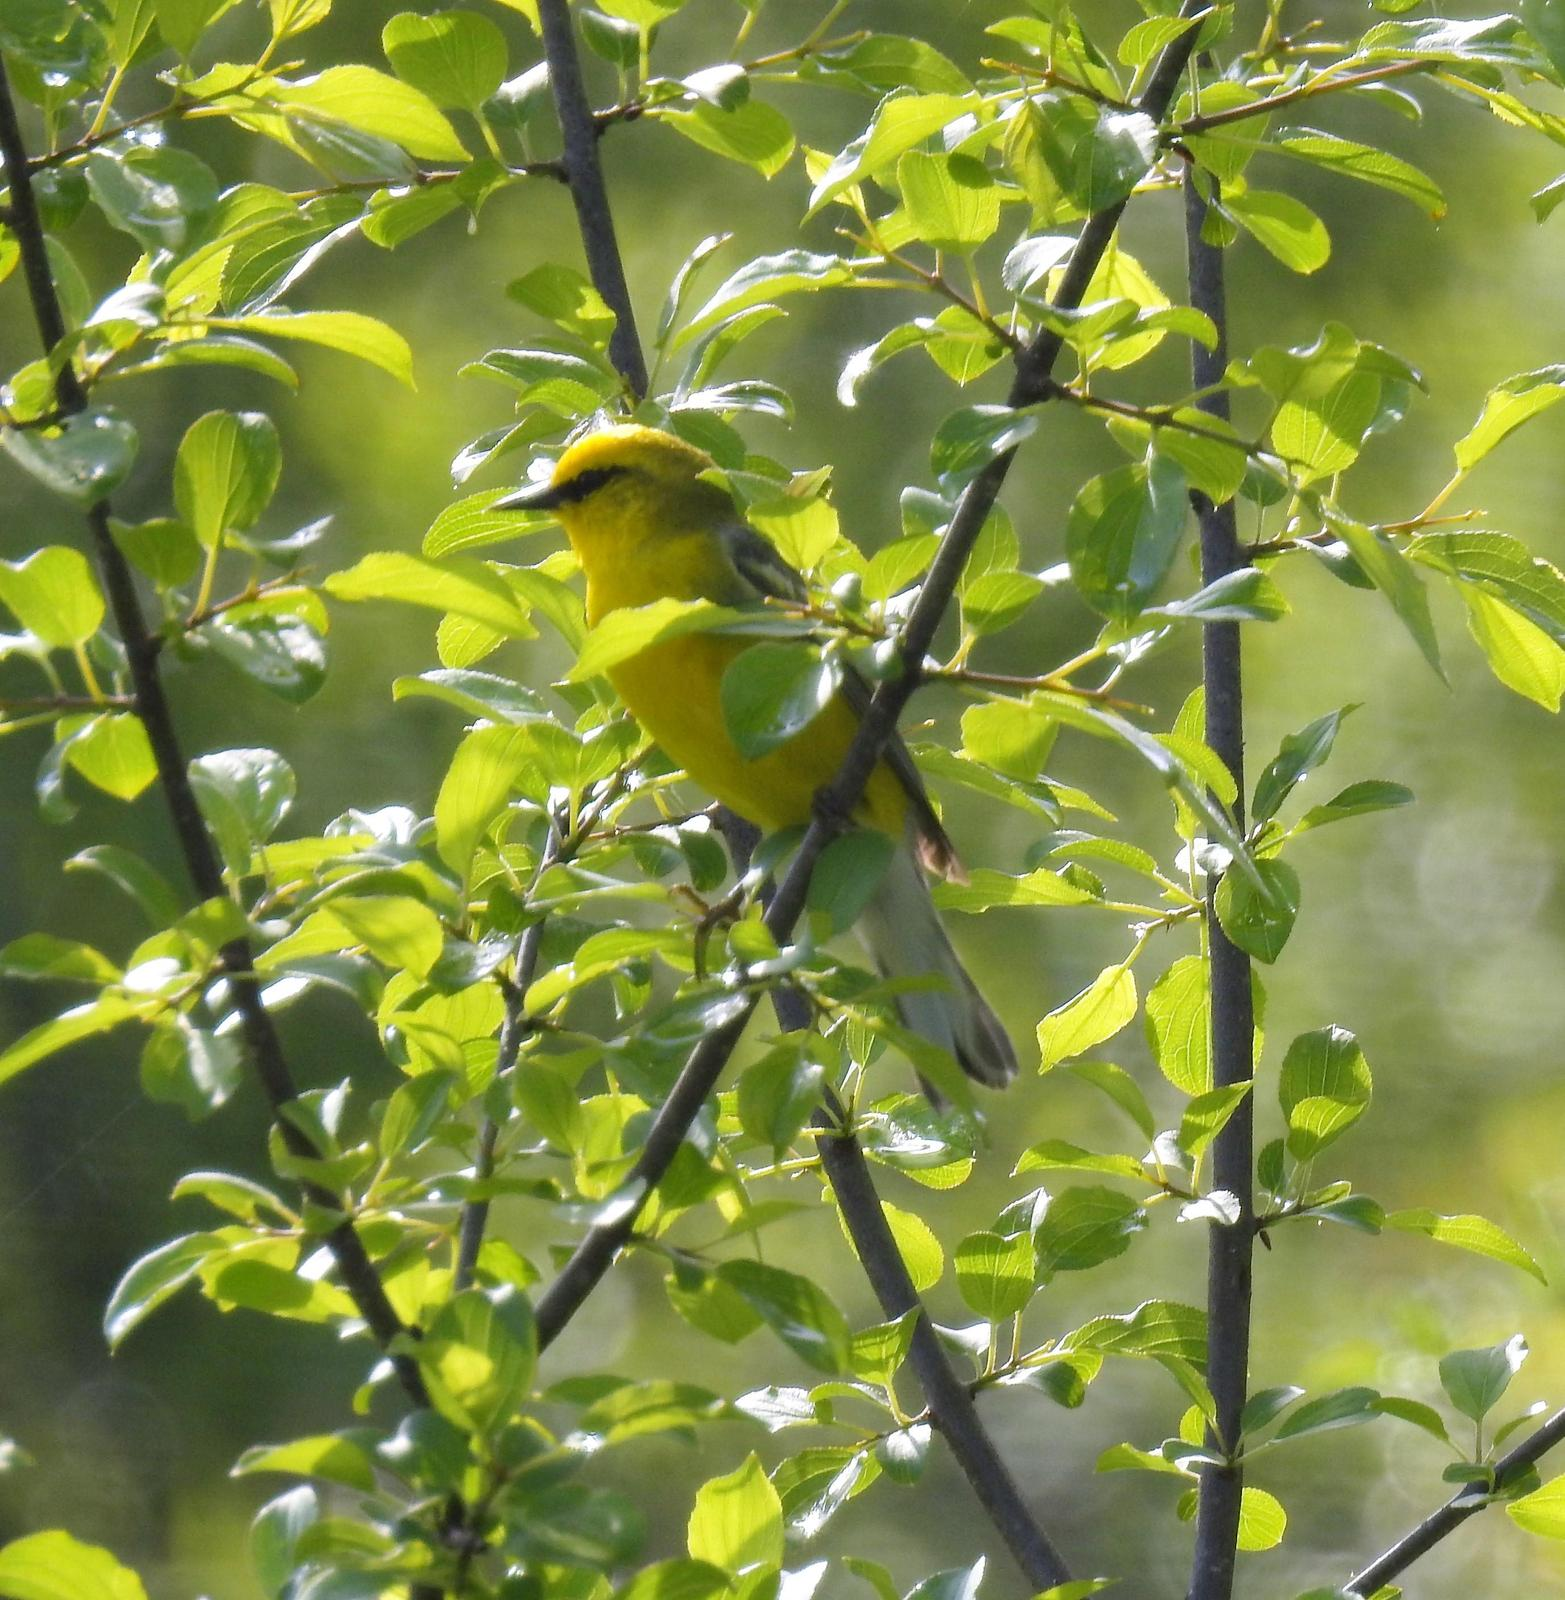 Blue-winged Warbler Photo by John Licharson